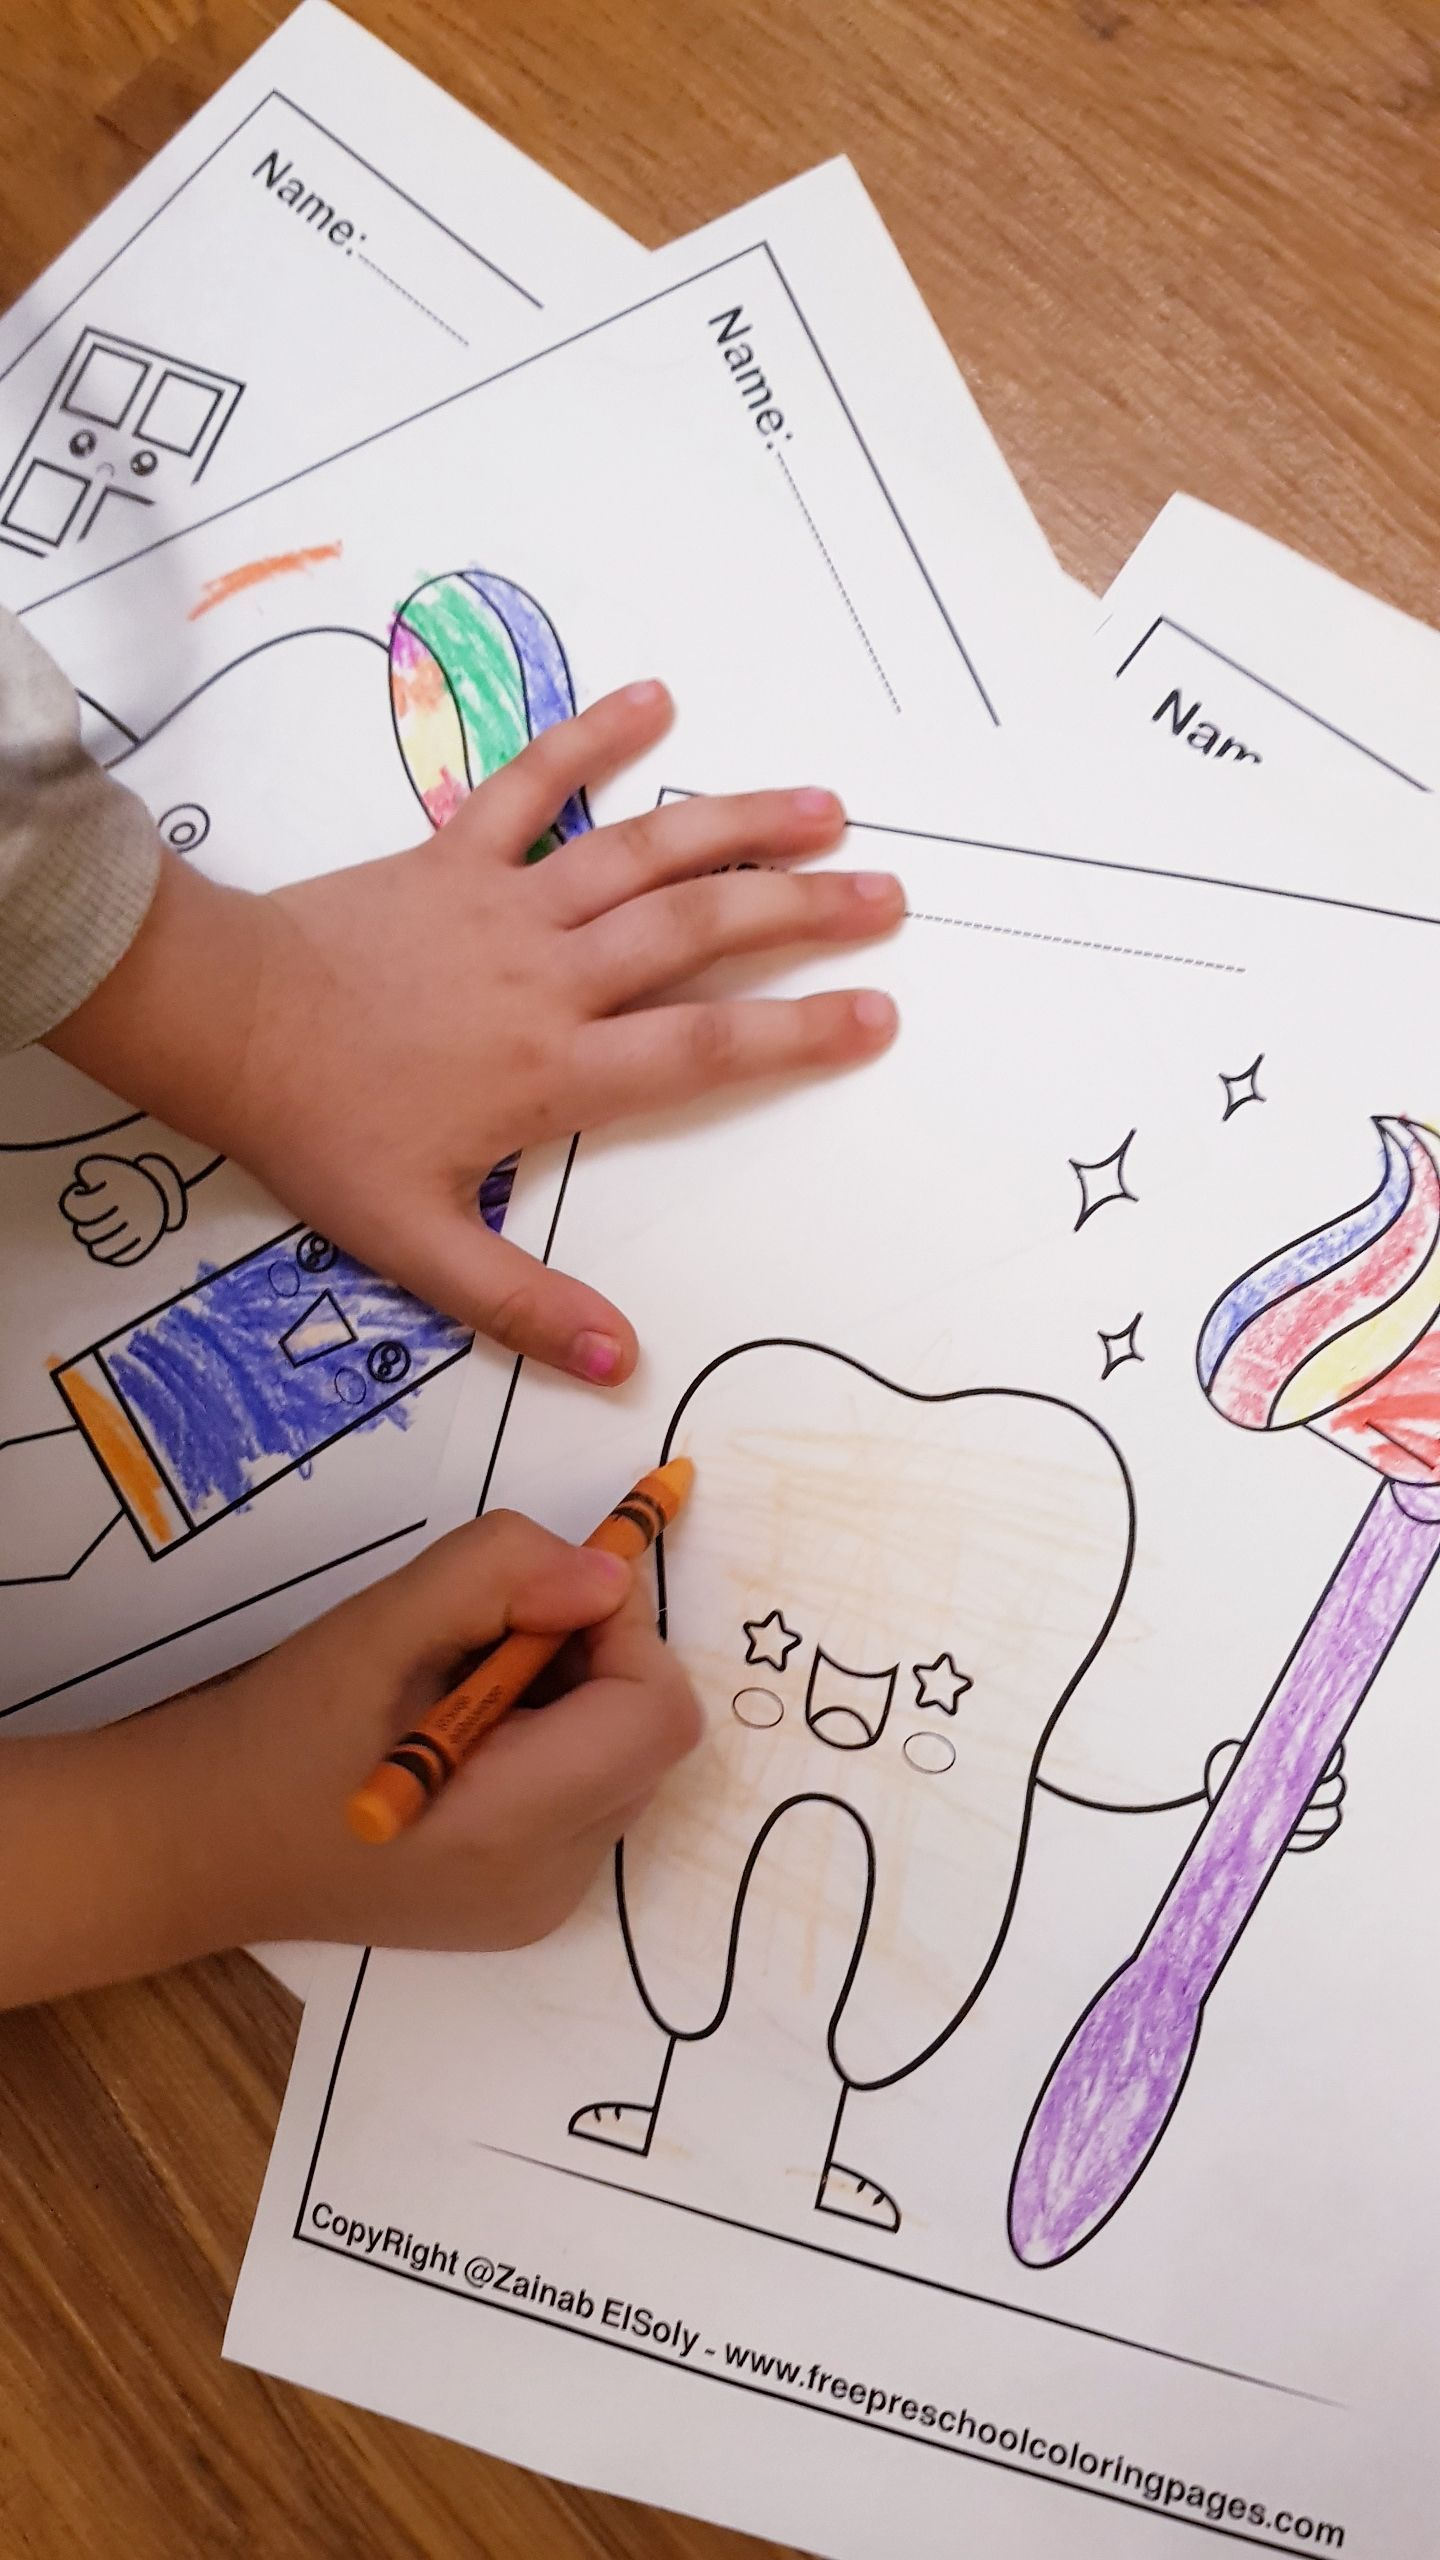 Free Dental Coloring Pages for Kids to Learn About the Dentist ... | 2560x1440